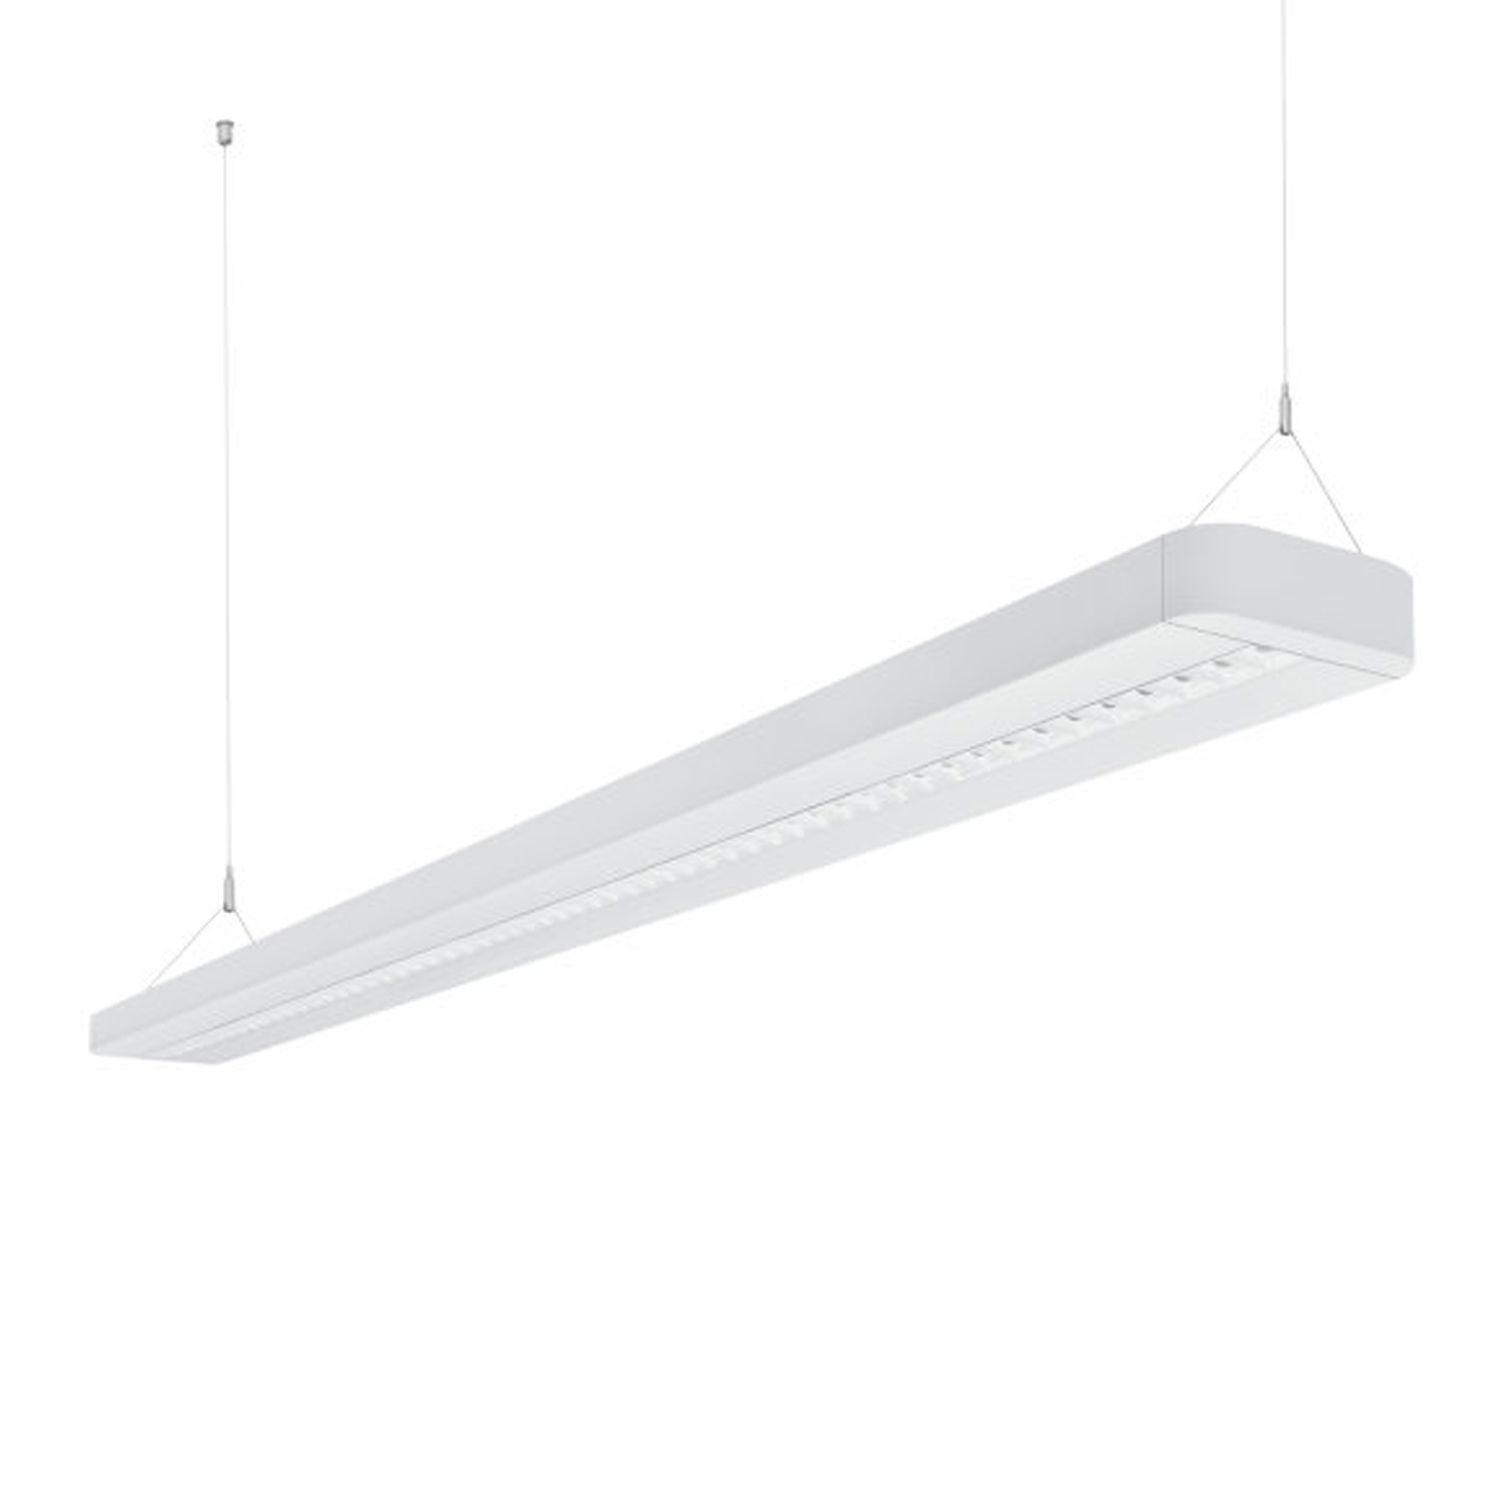 Ledvance LINEAR IndiviLED DIRECT 48W 150cm 3000K  | Dali Regulable - Luz Cálida